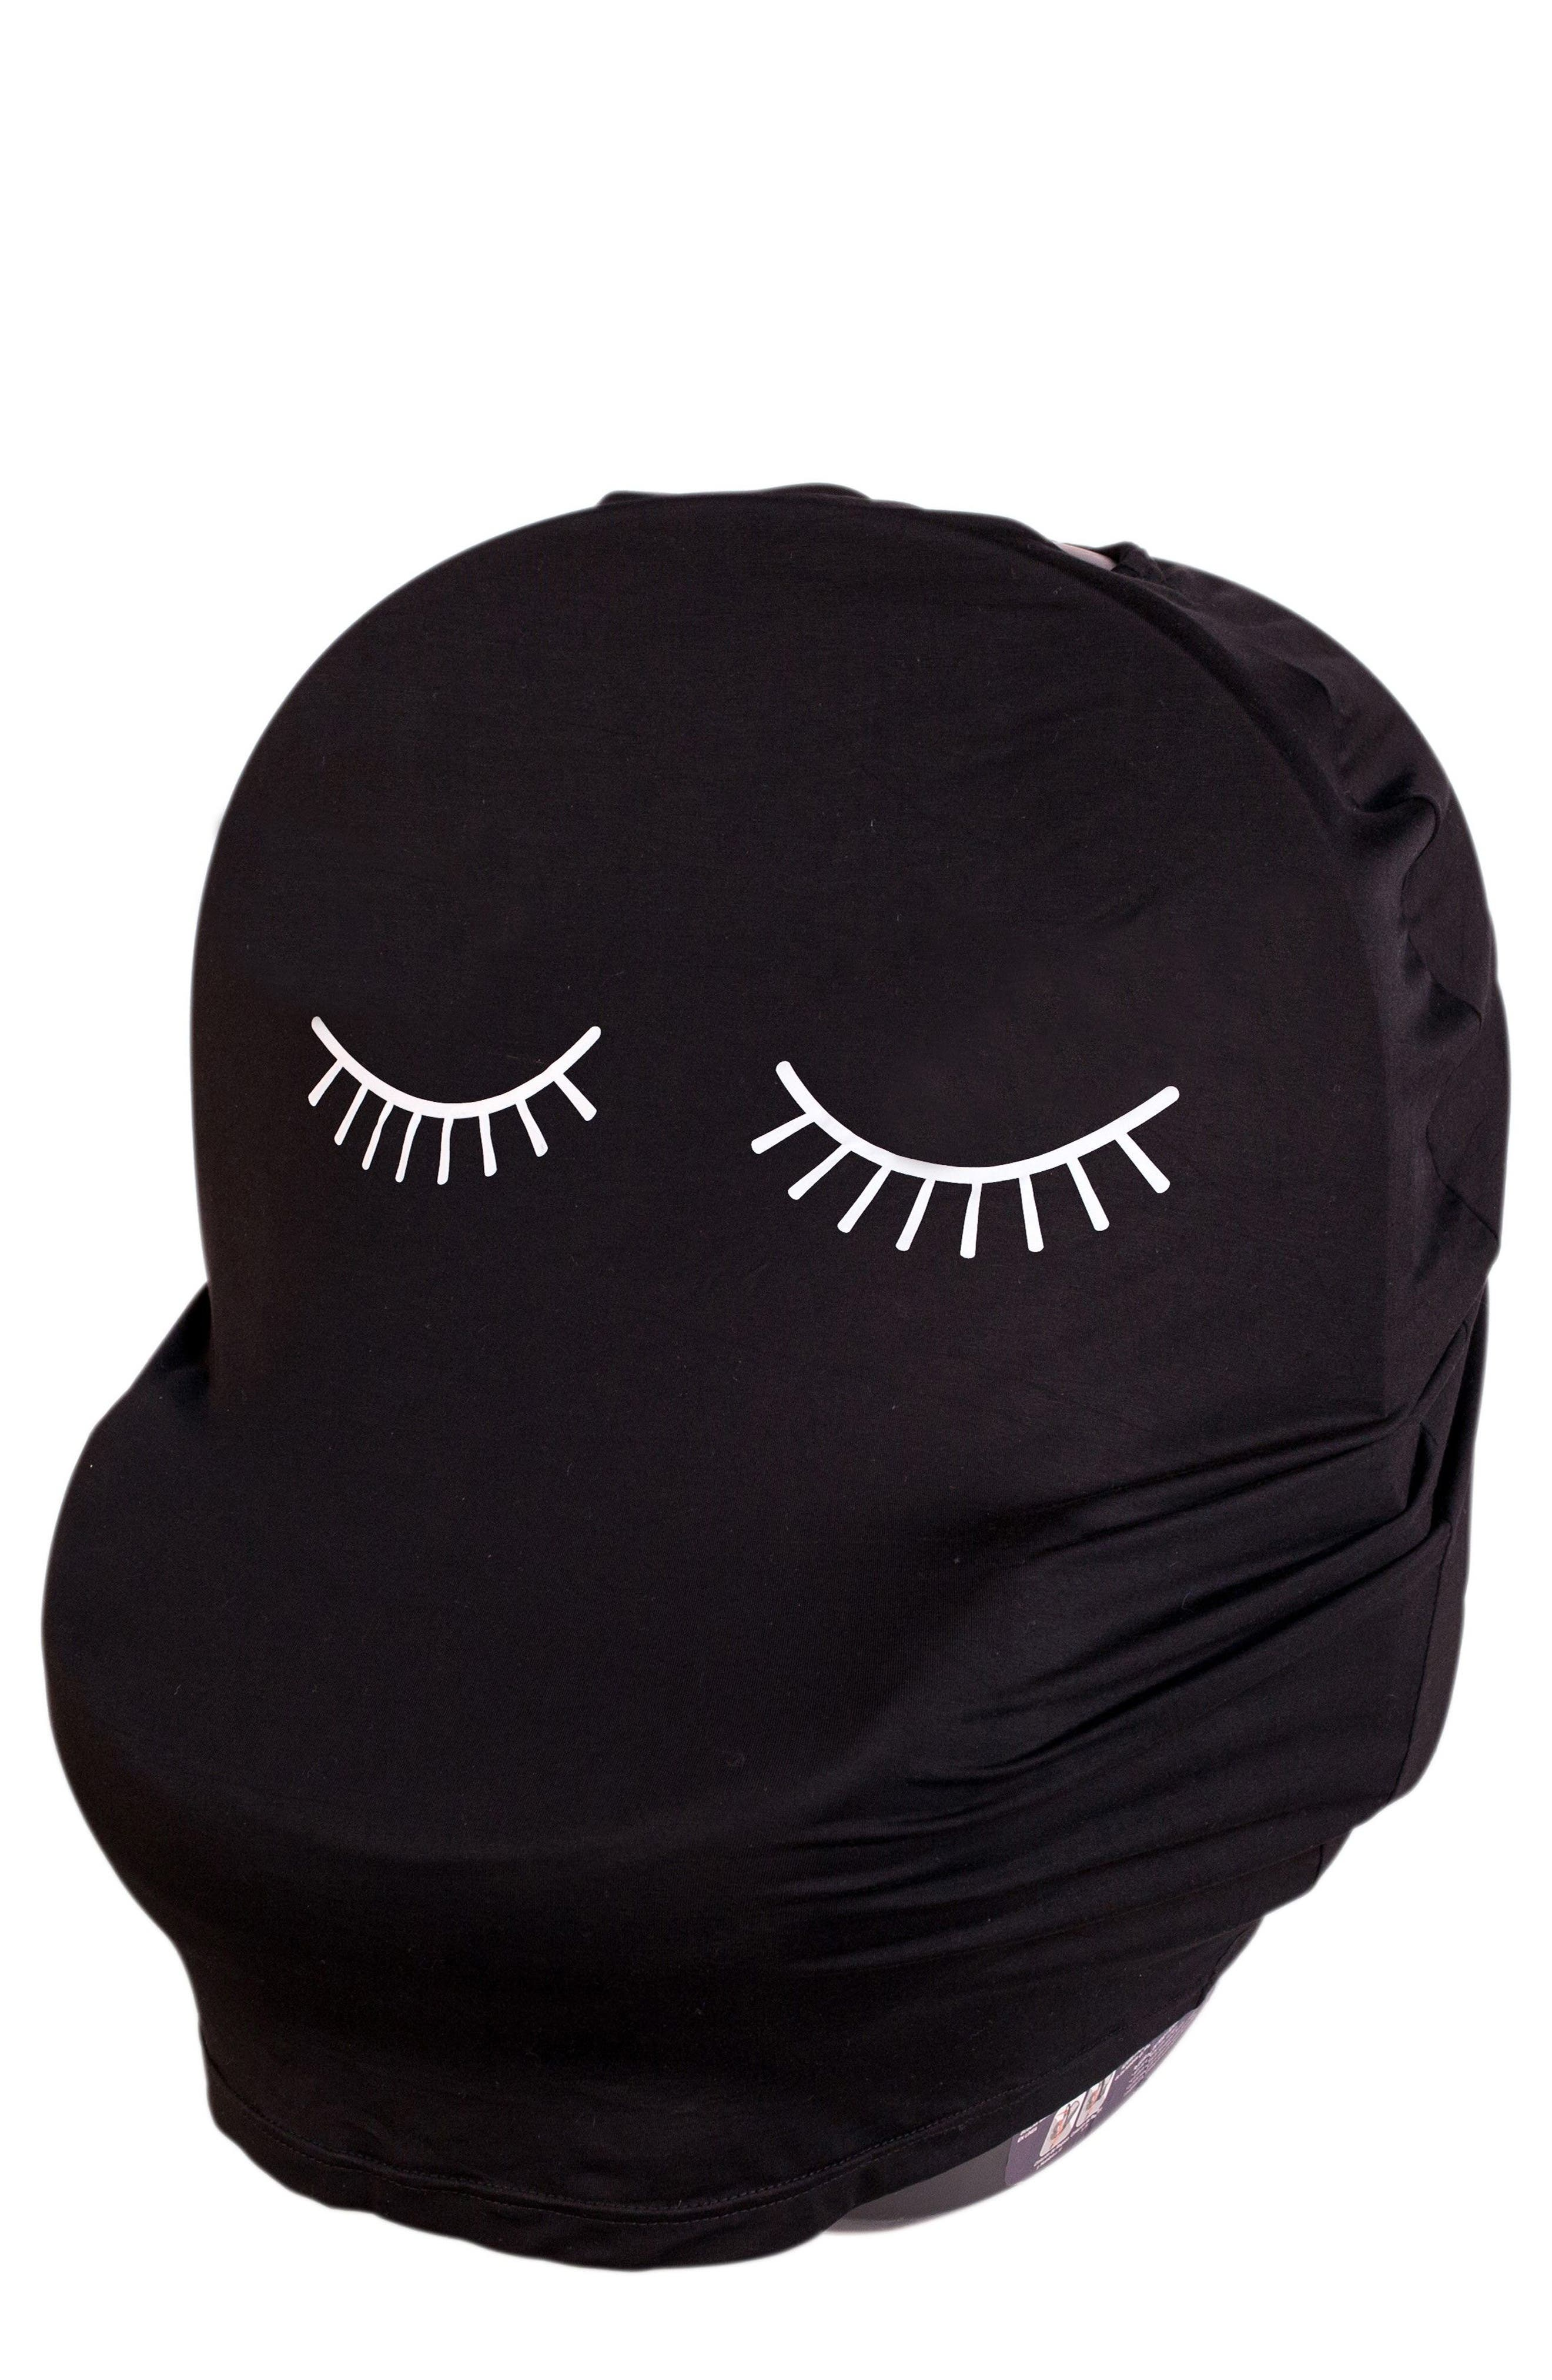 5-in-1 Car Seat Cover,                             Main thumbnail 1, color,                             Black Lashes